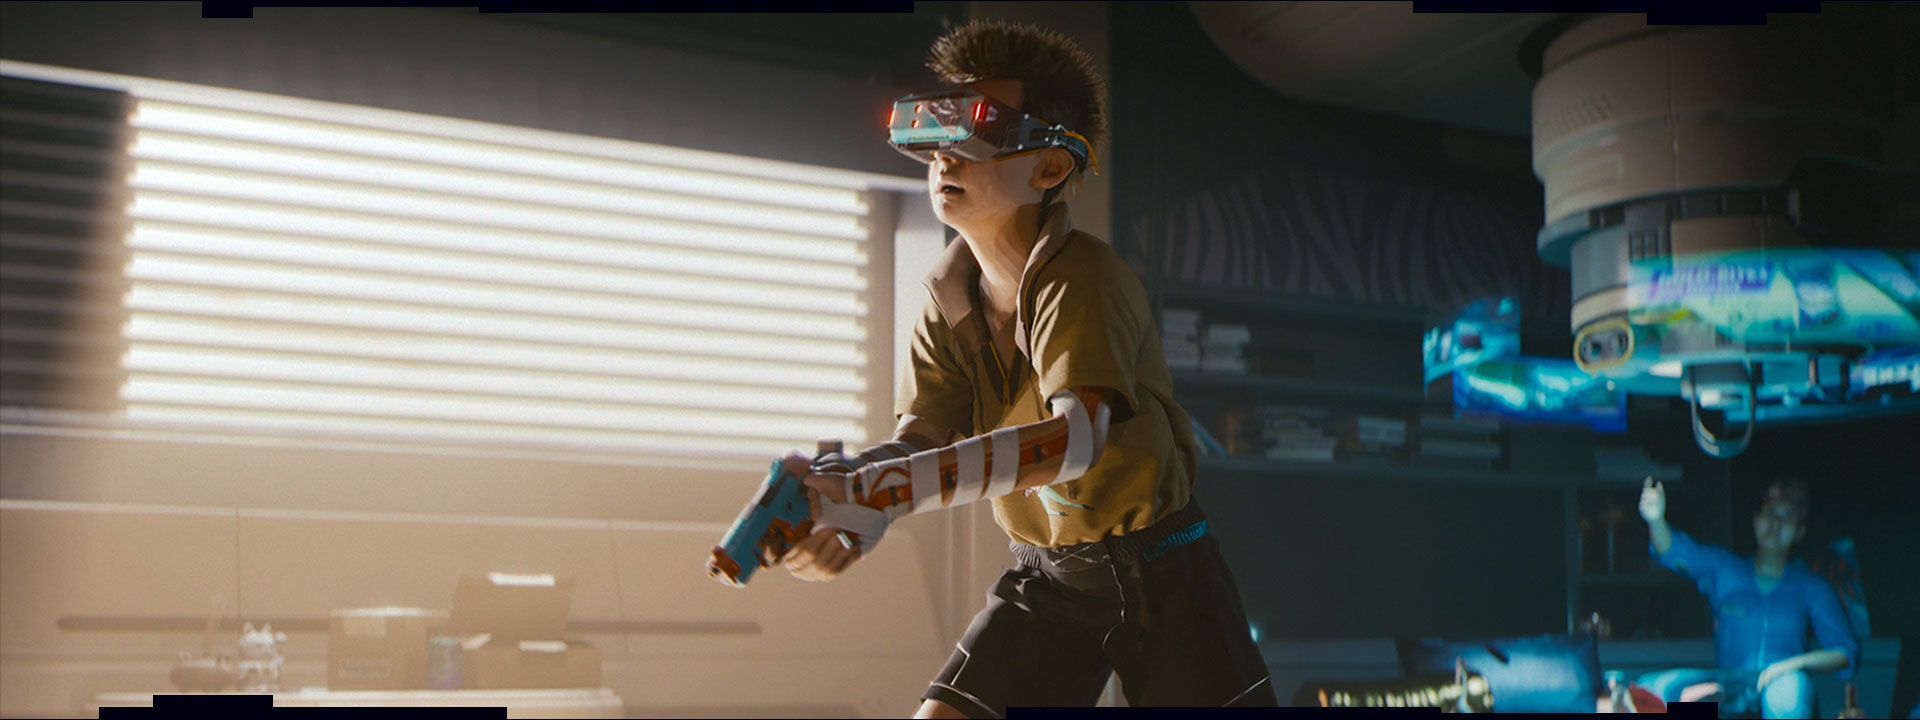 A young boy wearing VR glasses plays a shooter game